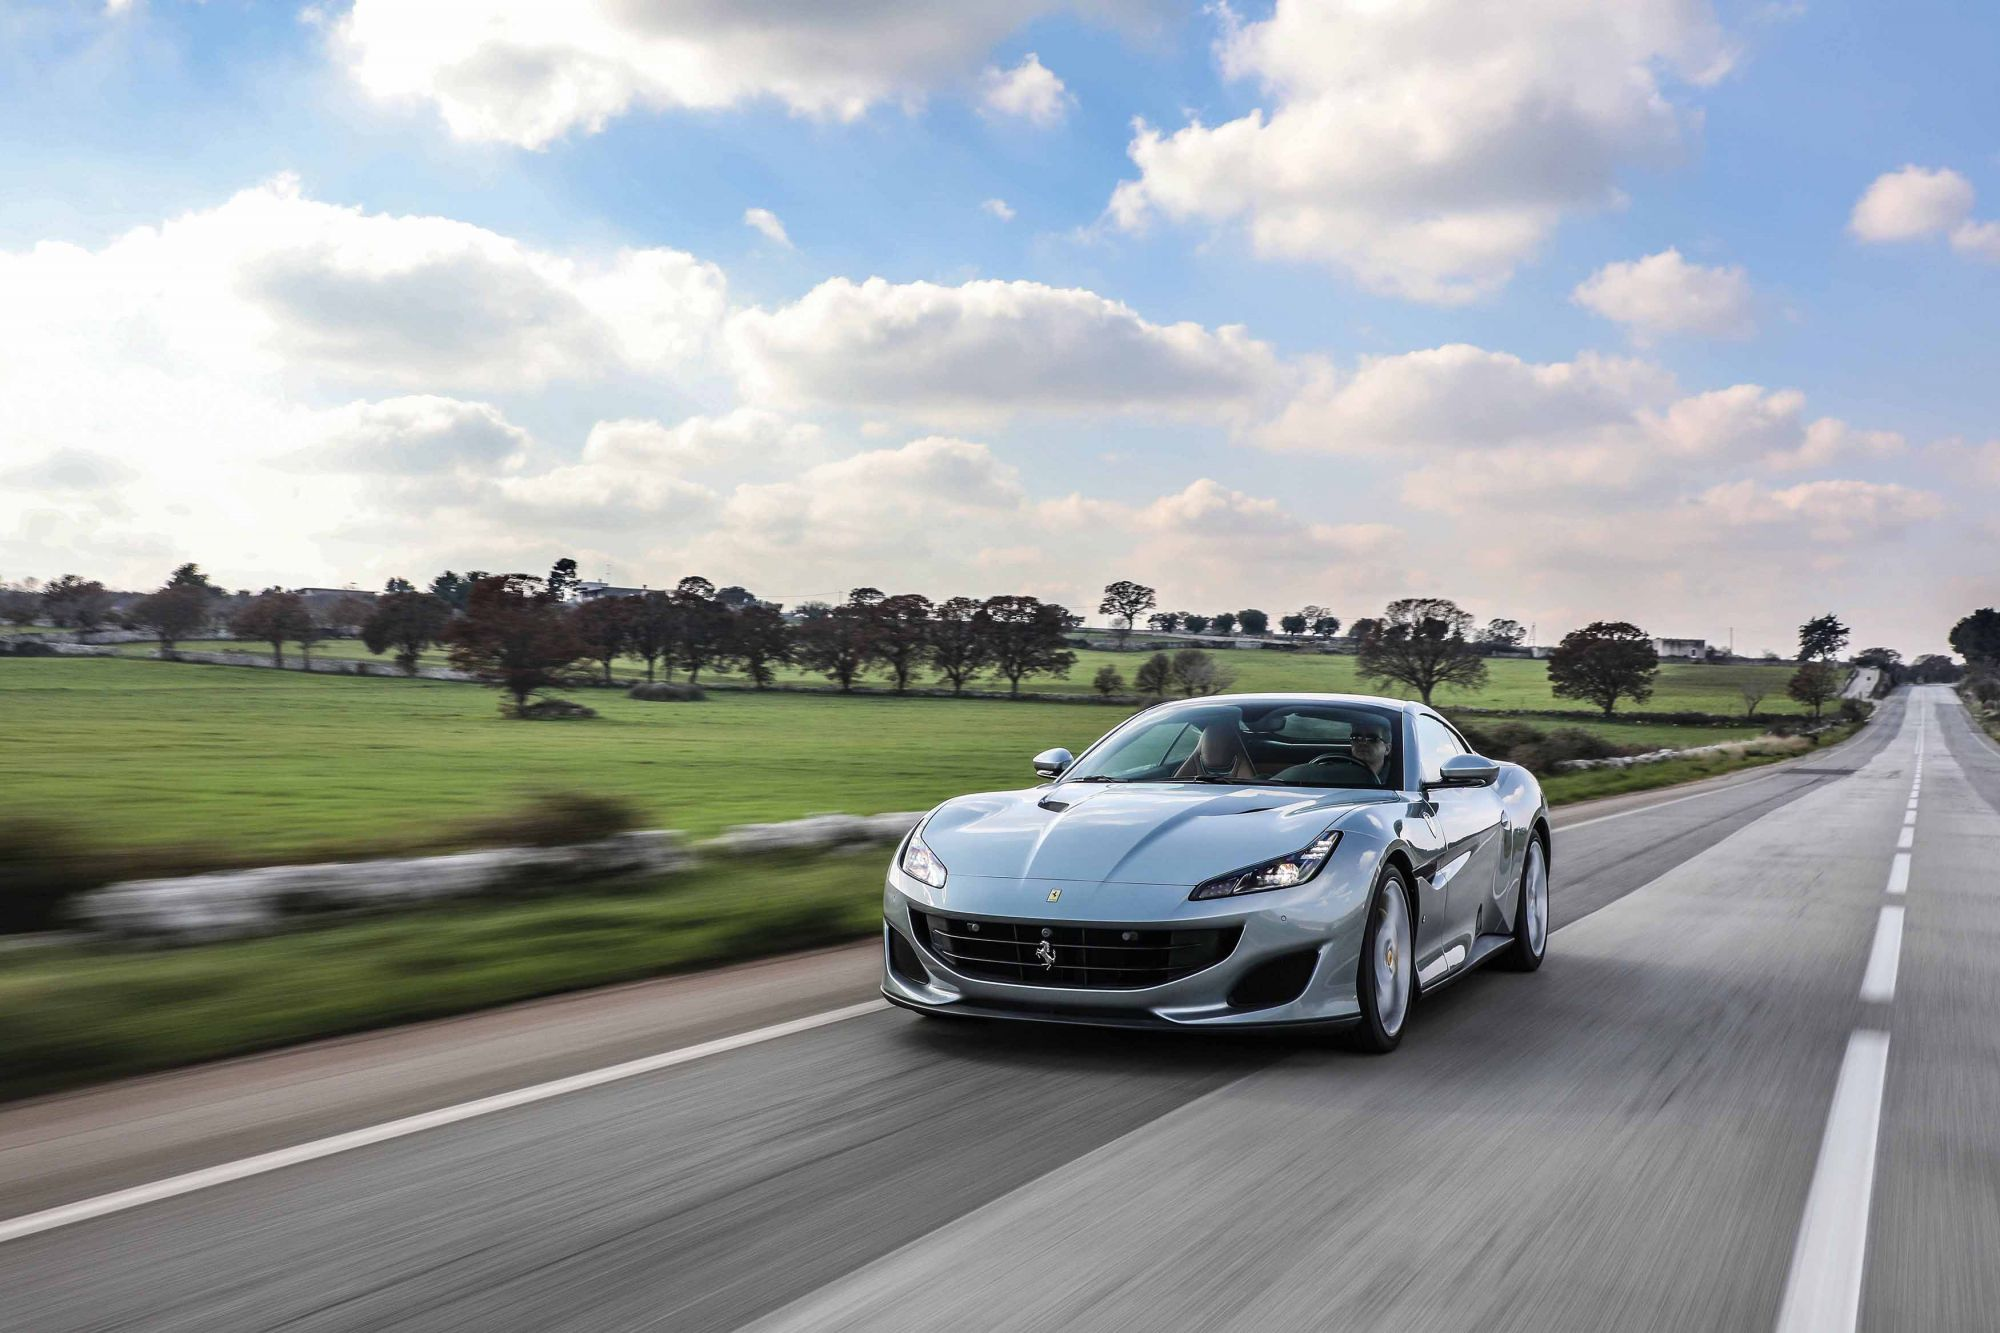 The new-found dynamism and excellent handling of the Portofino lifts one's driving experience from lukewarm to hot‑blooded Ferrari thrilling